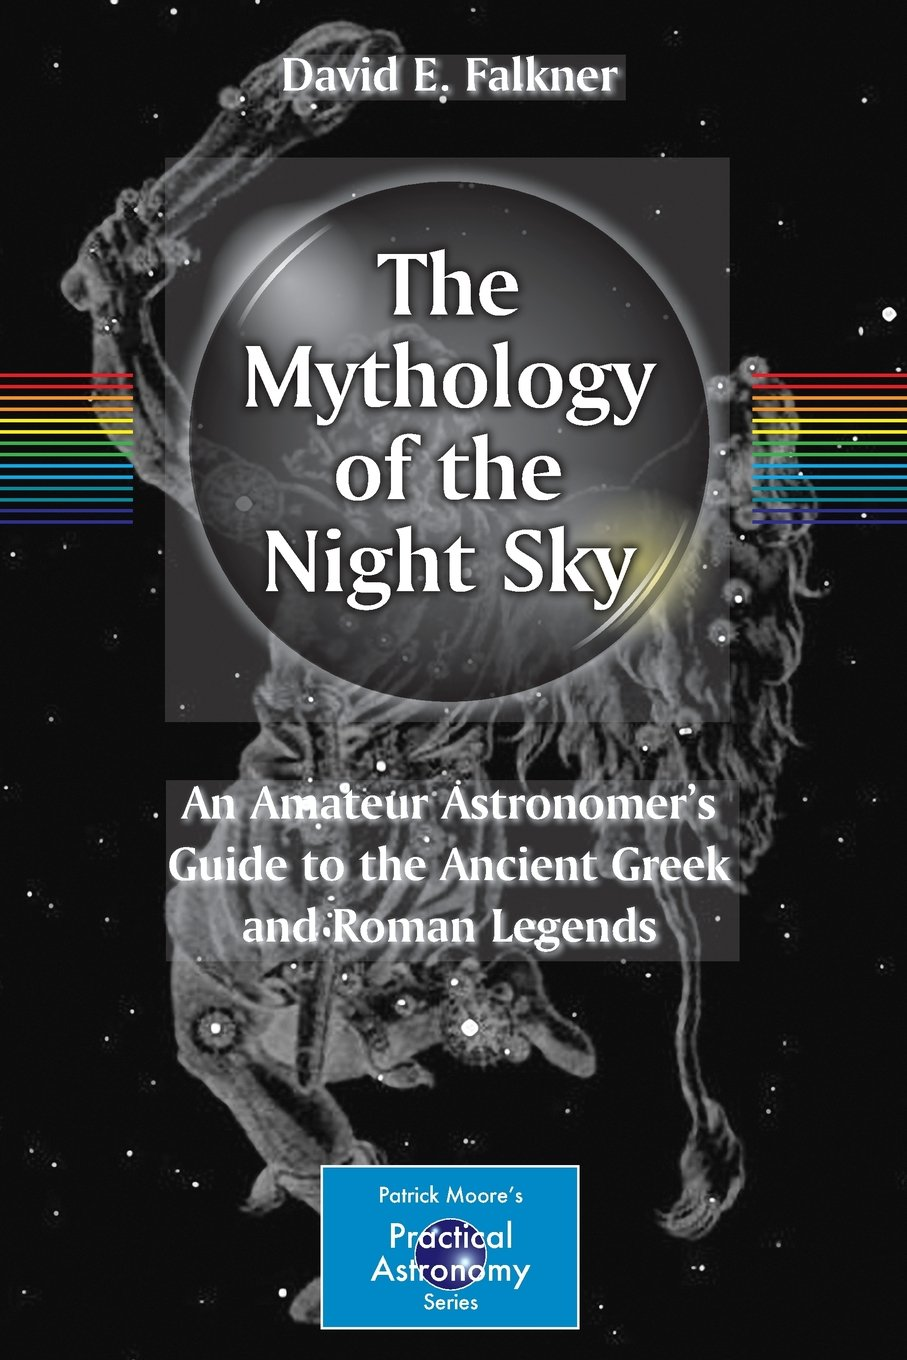 The Mythology of the Night Sky: An Amateur Astronomer's Guide to the Ancient Greek and Roman Legends free download